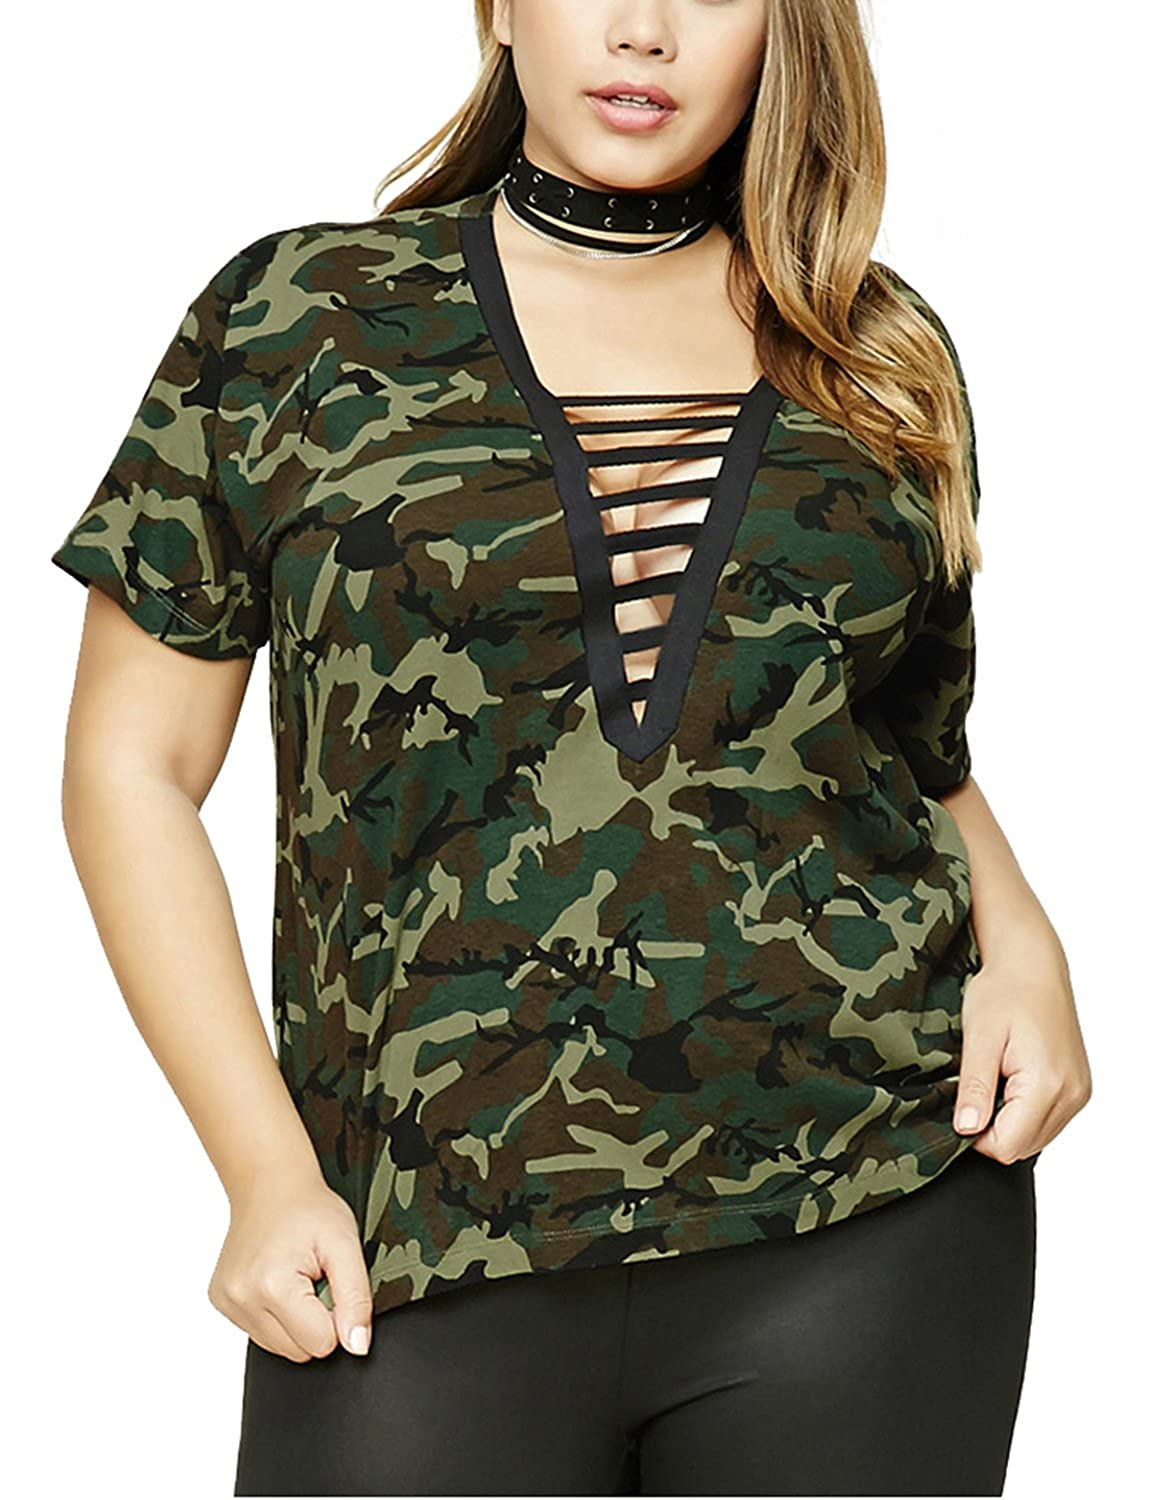 2c92d34c7879d5 HaoDuoYi Womens Plus Size Camouflage Lace Up Crisscross Front Top T Shirt  at Amazon Women's Clothing store: